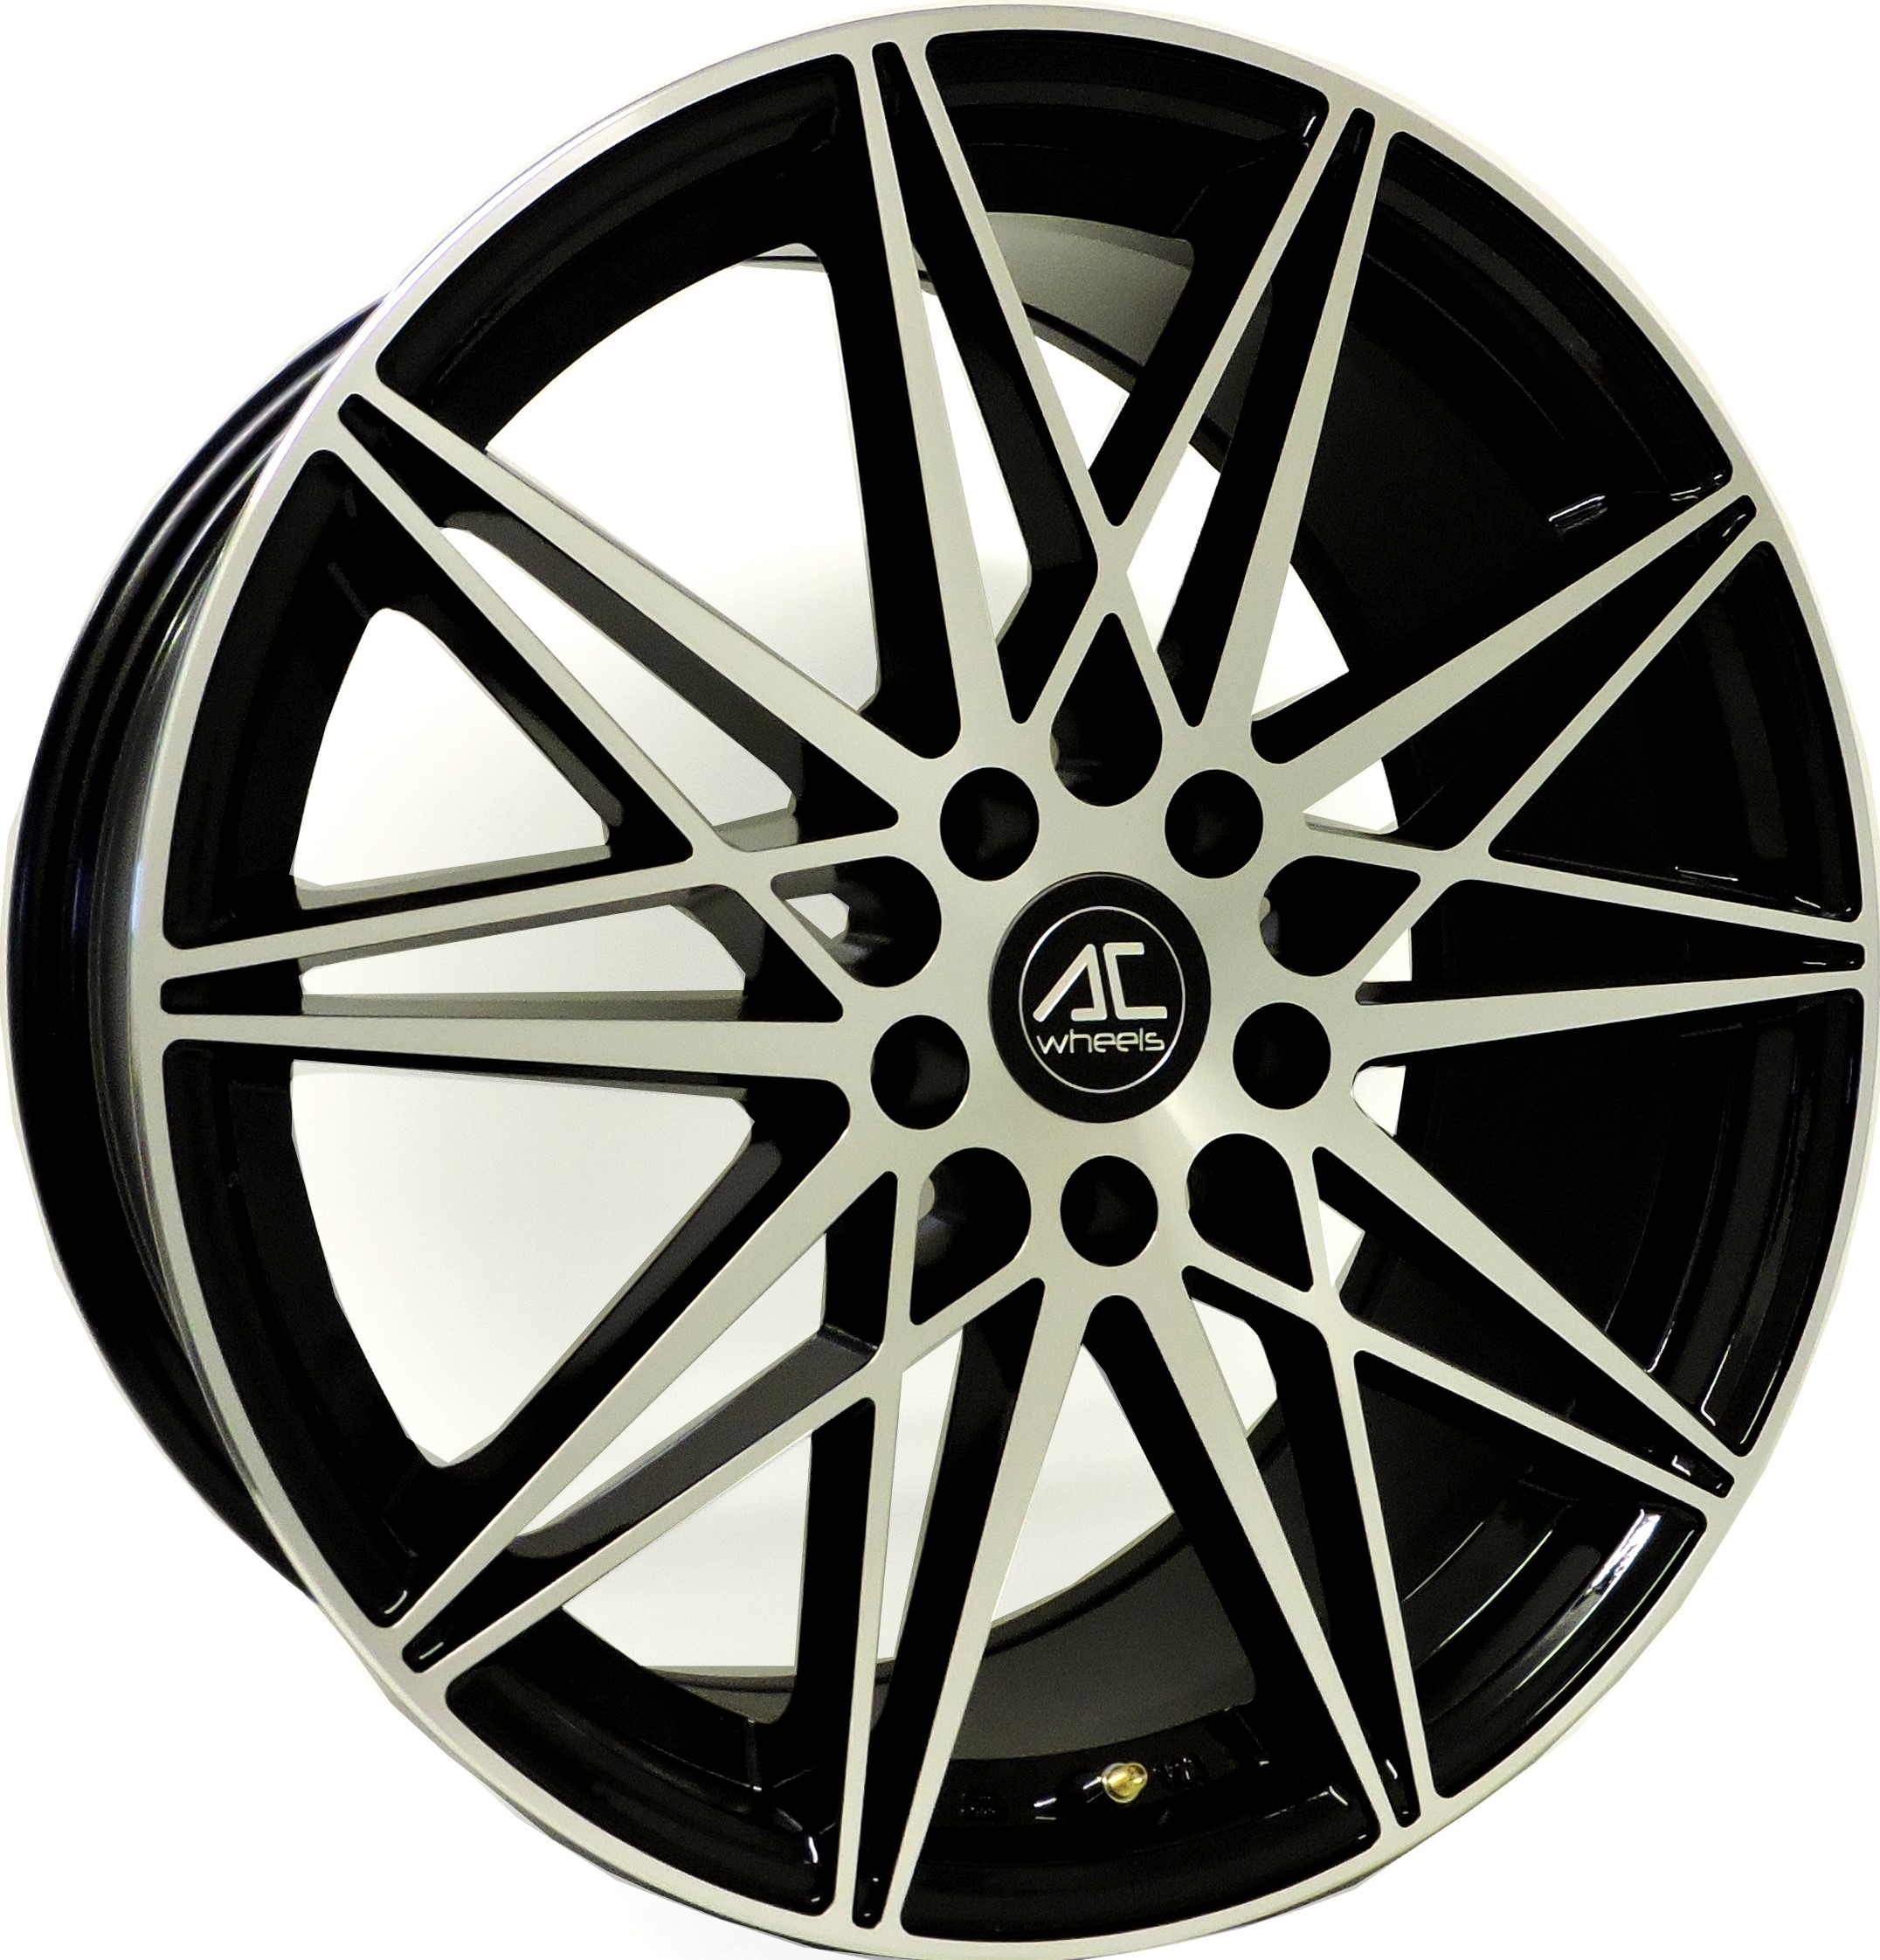 AC Wheels - Huira (Black Polished)